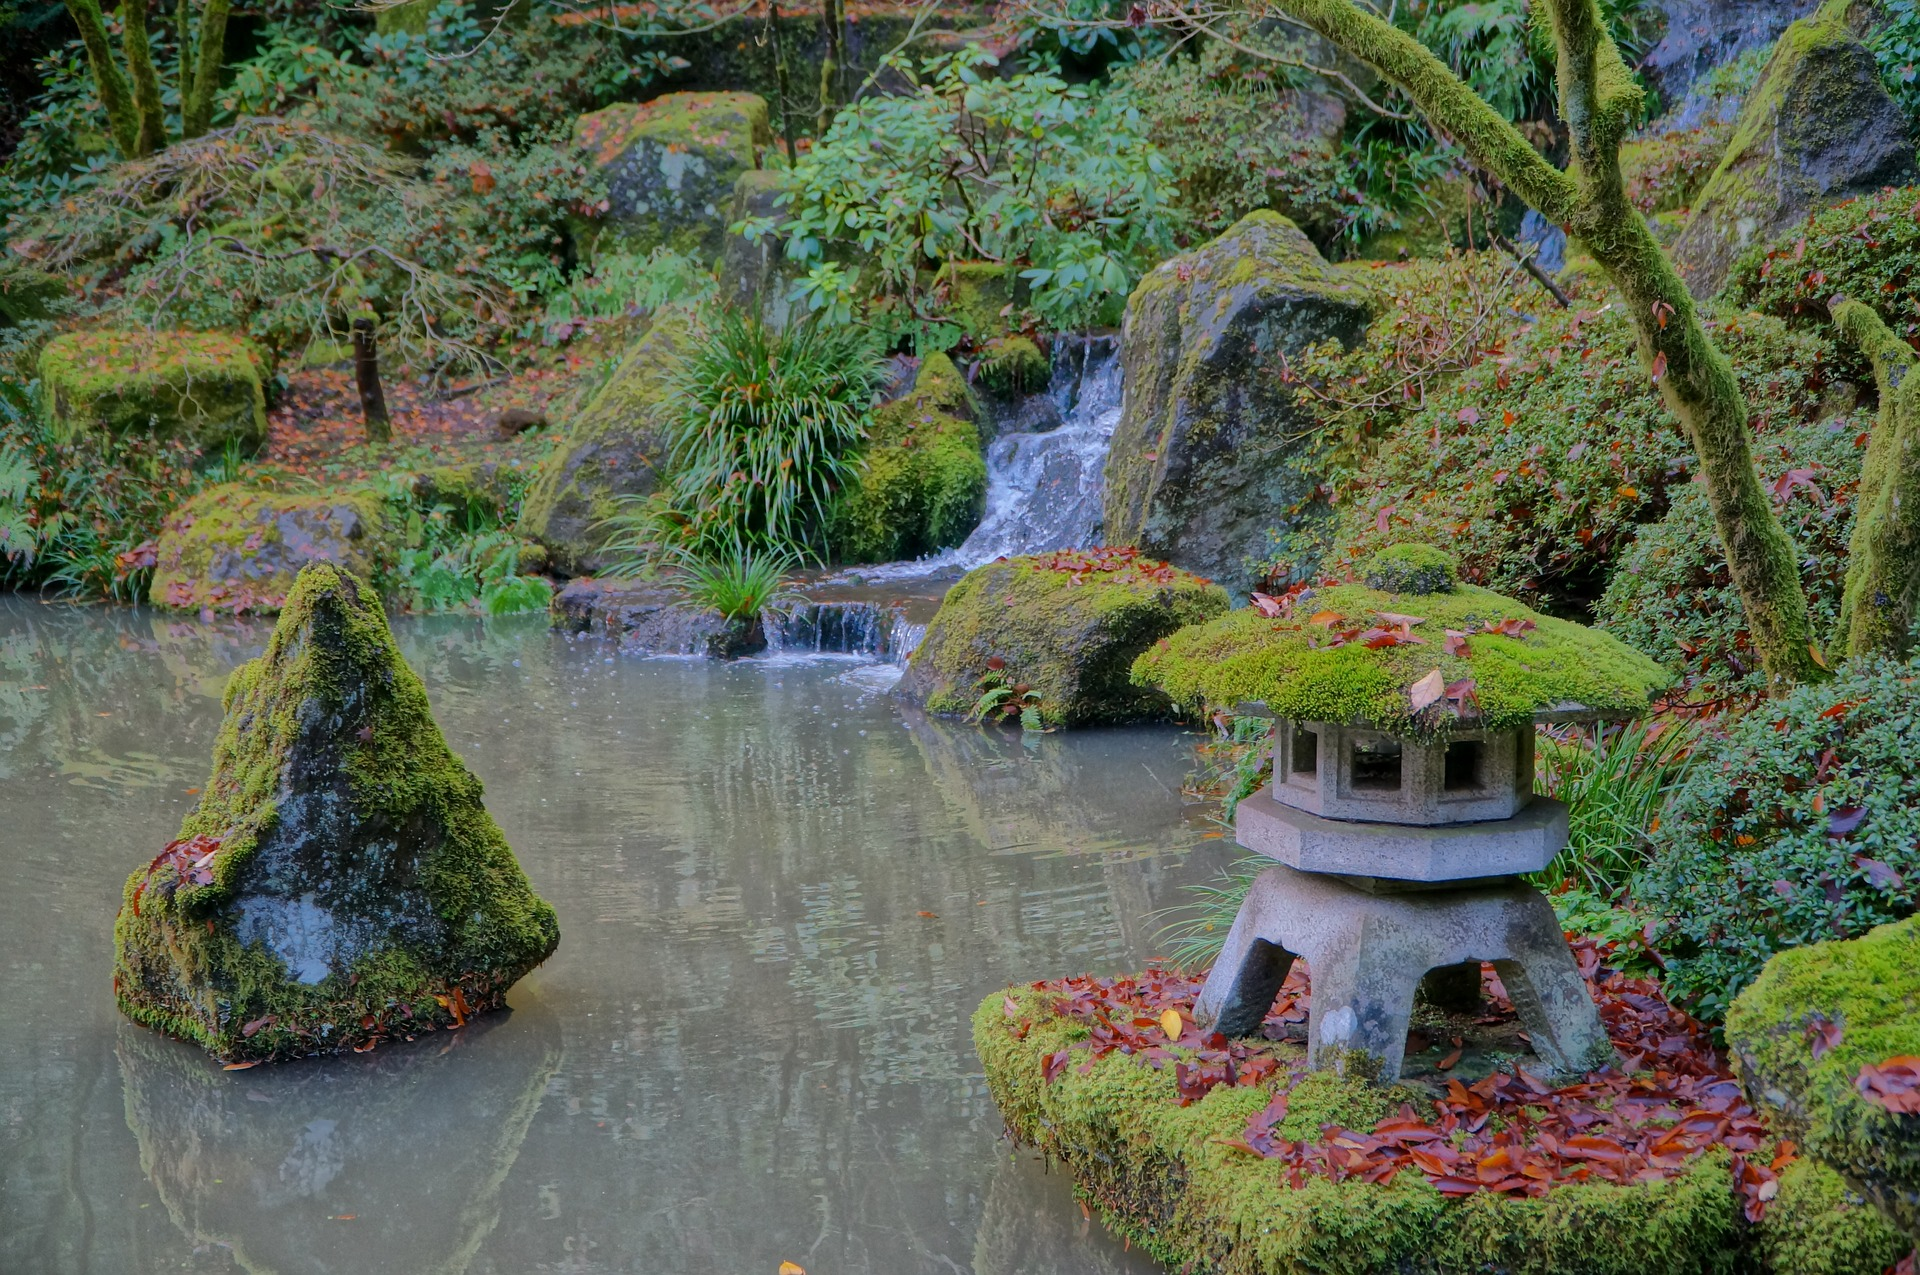 A pond, waterfall, and a lantern covered by moss.